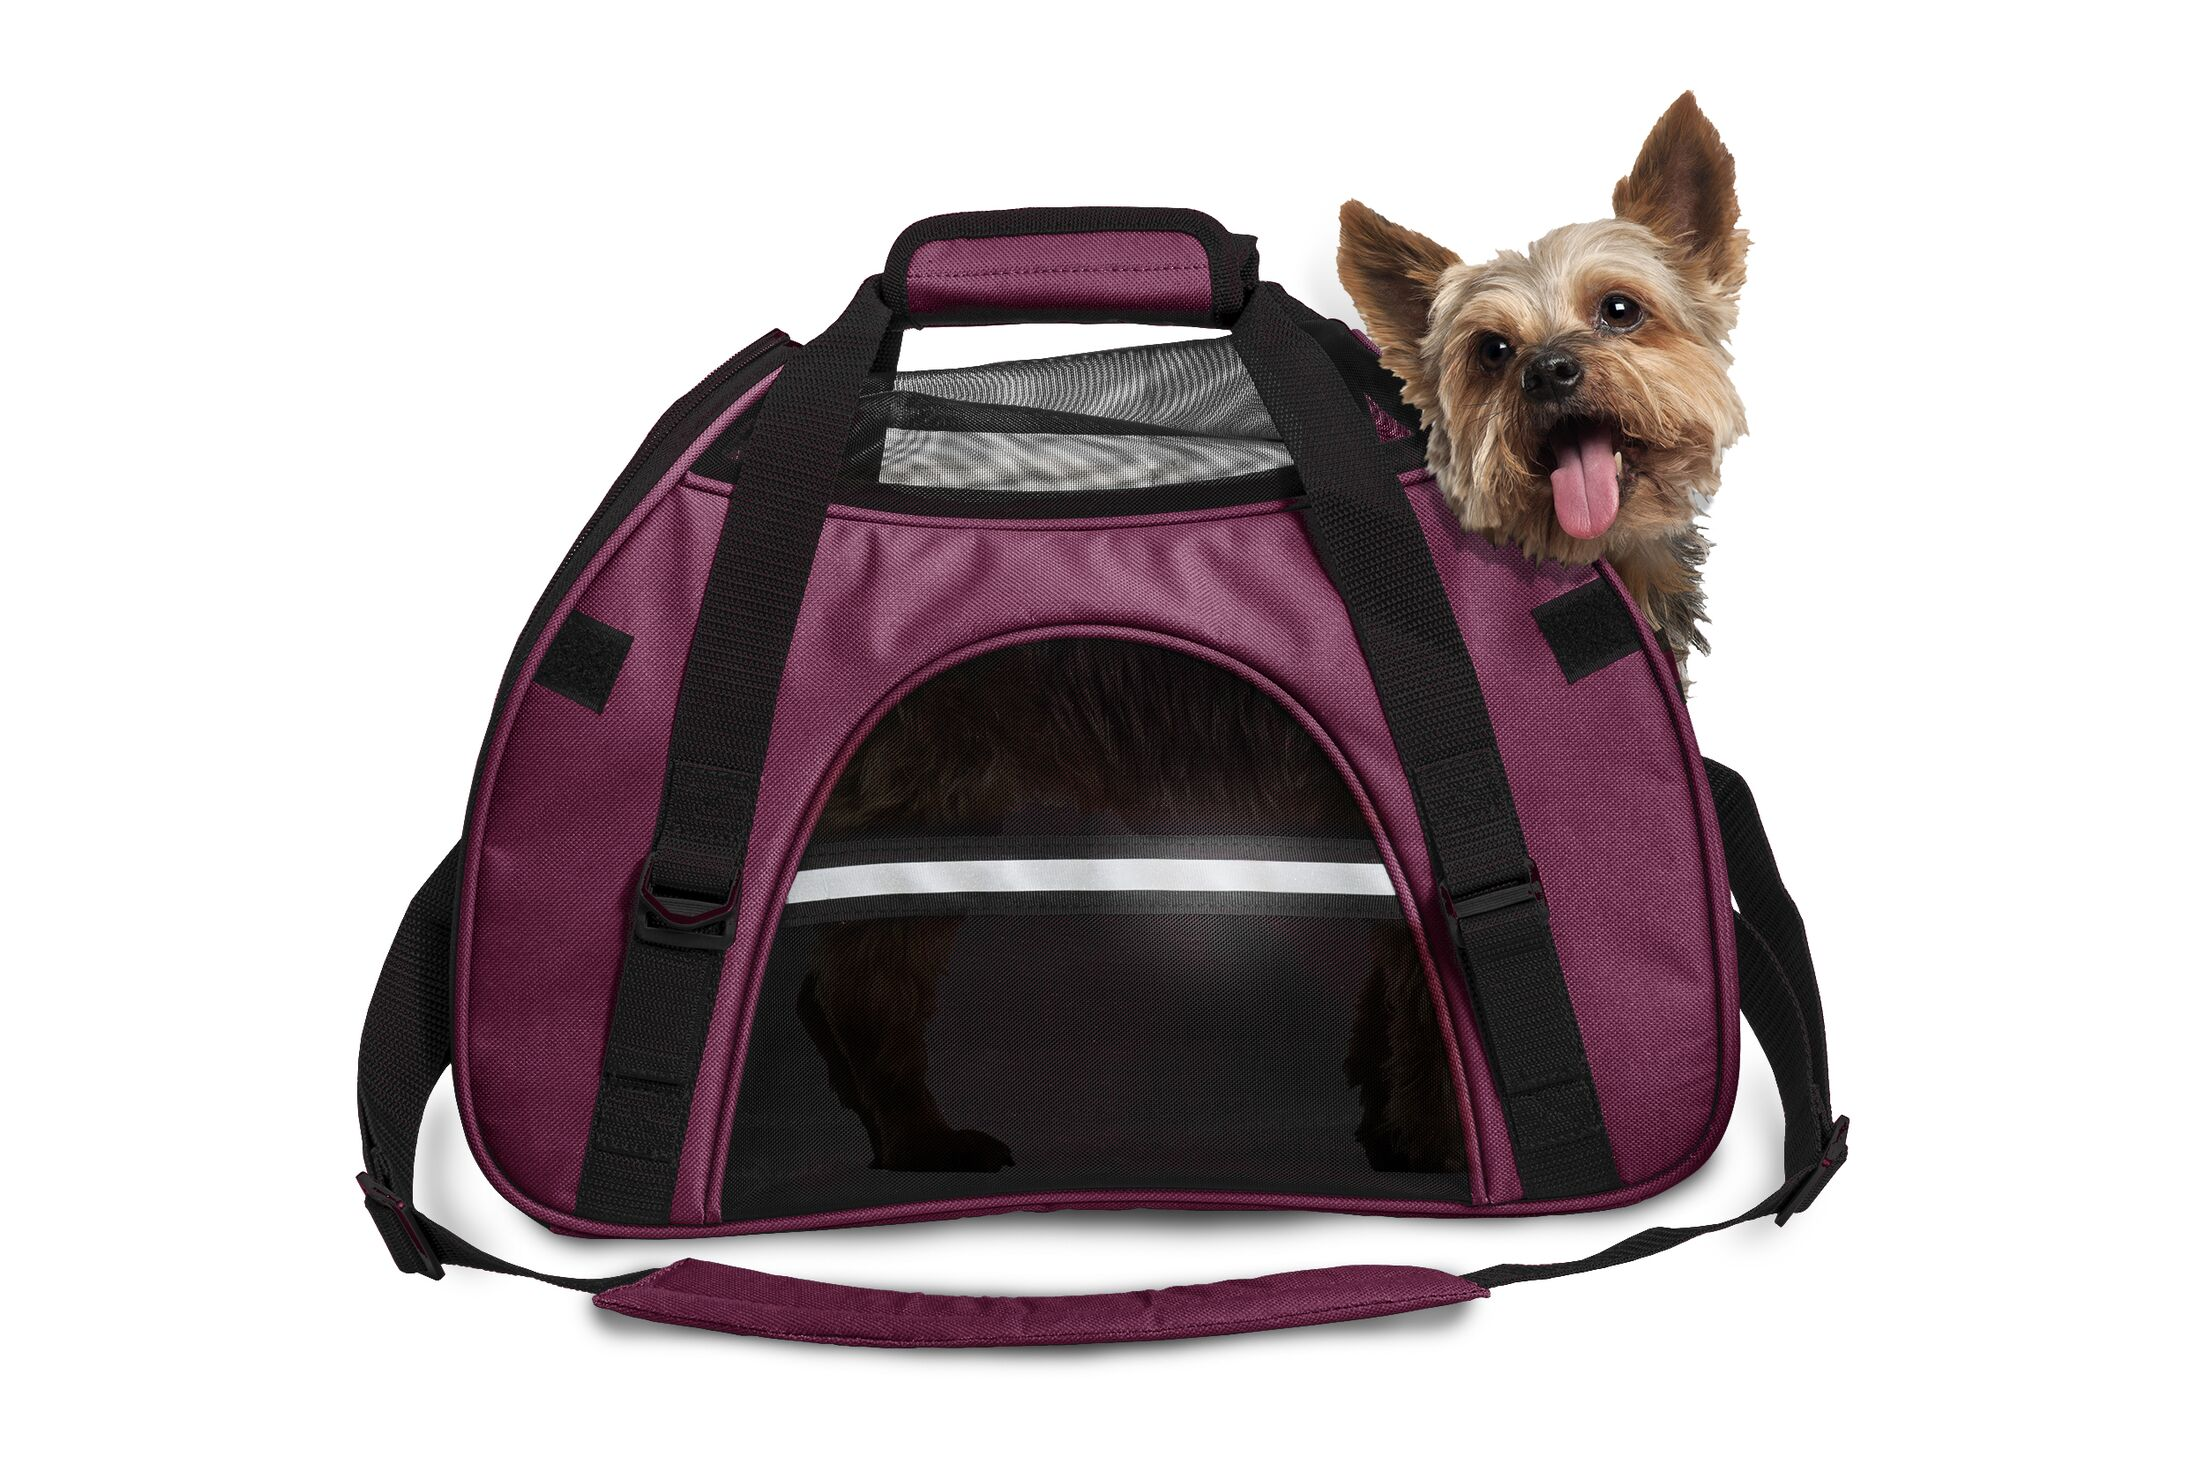 Pet Carrier Color: Raspberry, Size: Small (11